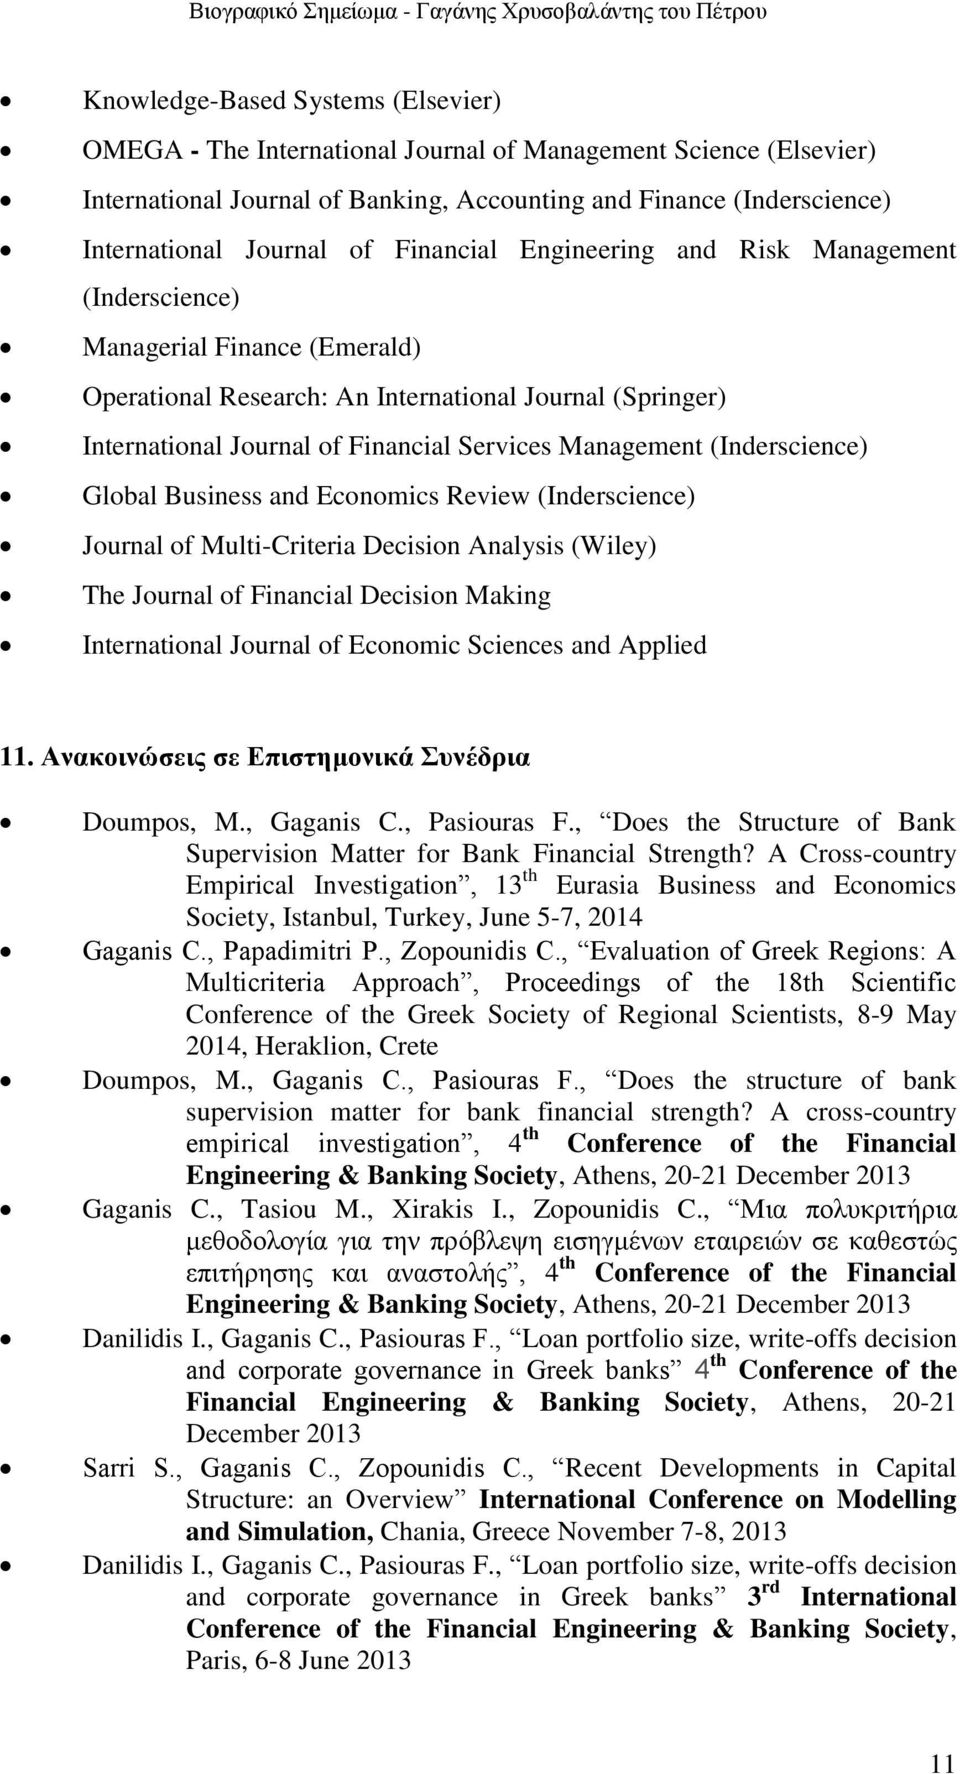 (Inderscience) Global Business and Economics Review (Inderscience) Journal of Multi-Criteria Decision Analysis (Wiley) The Journal of Financial Decision Making International Journal of Economic